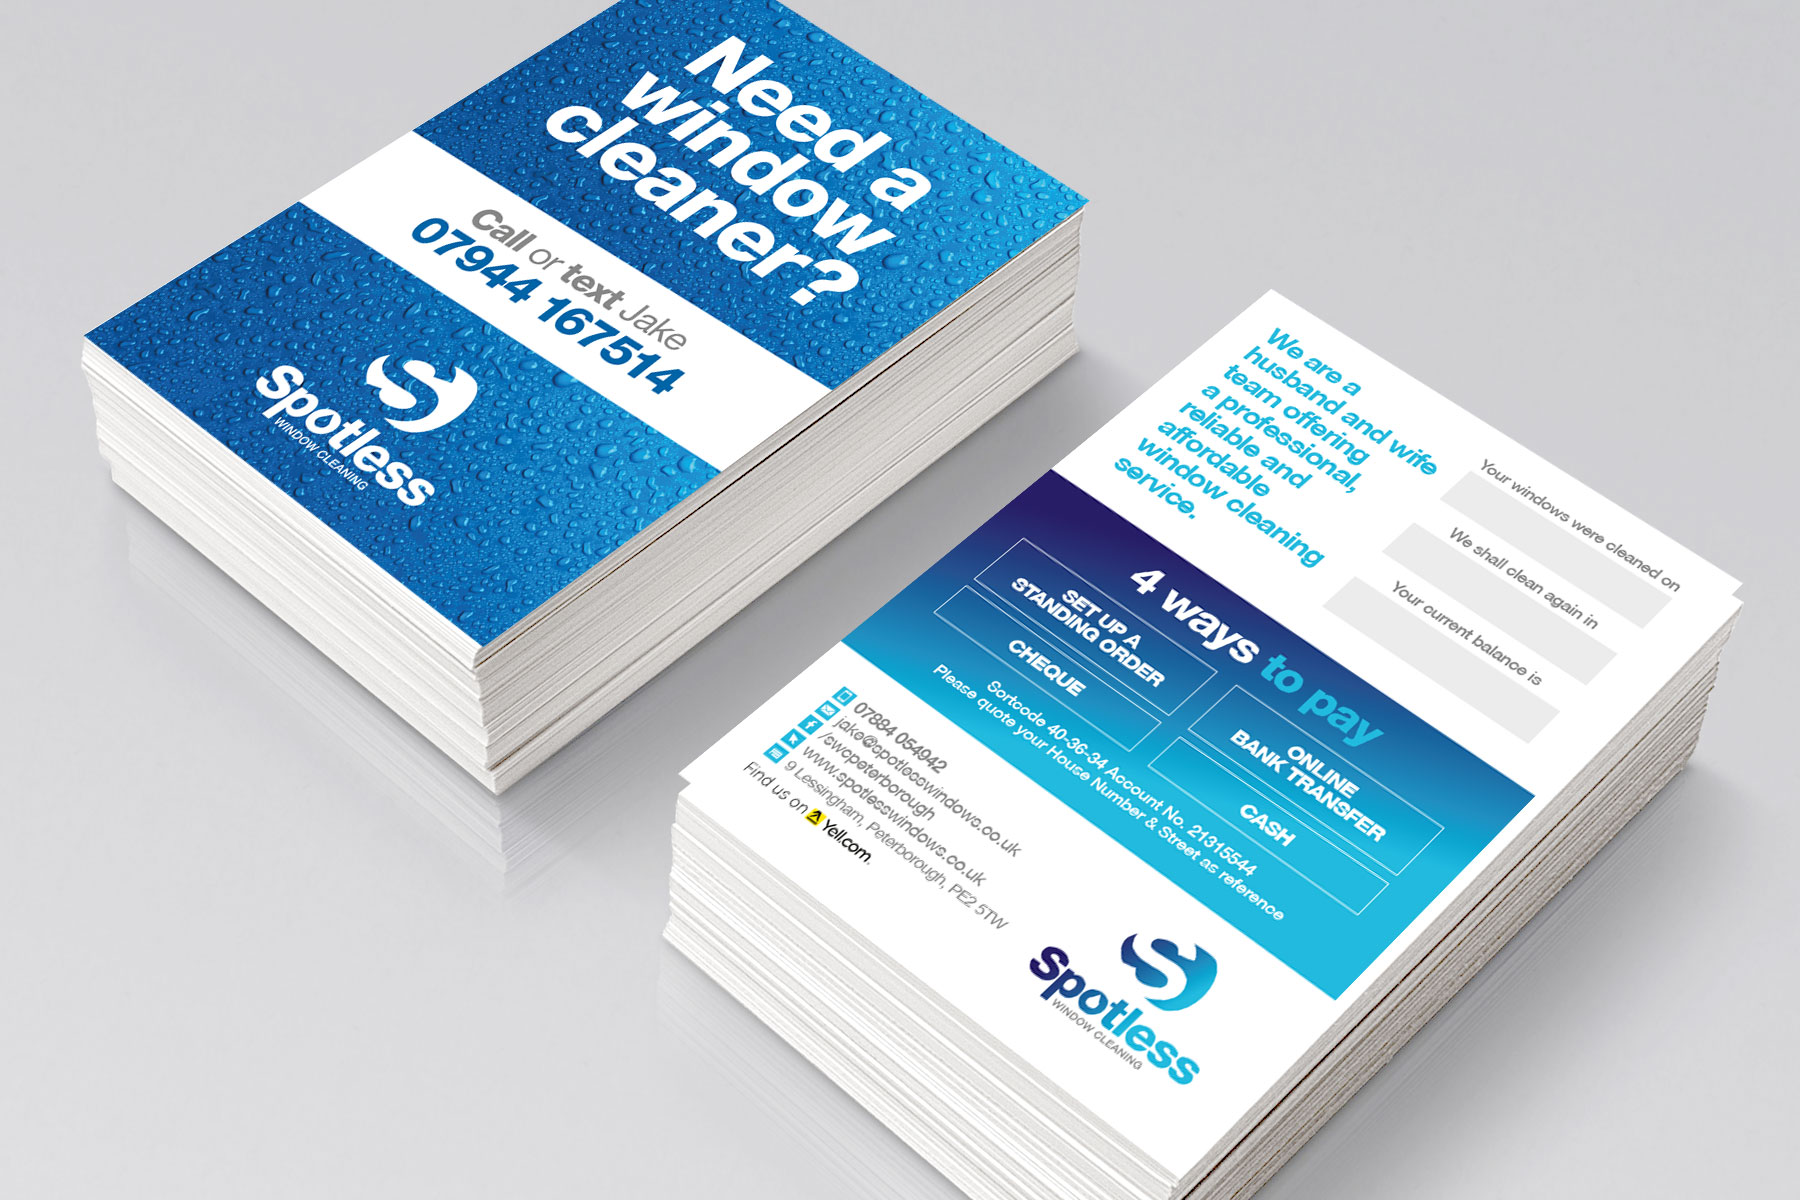 Leaflet design for Spotless branding